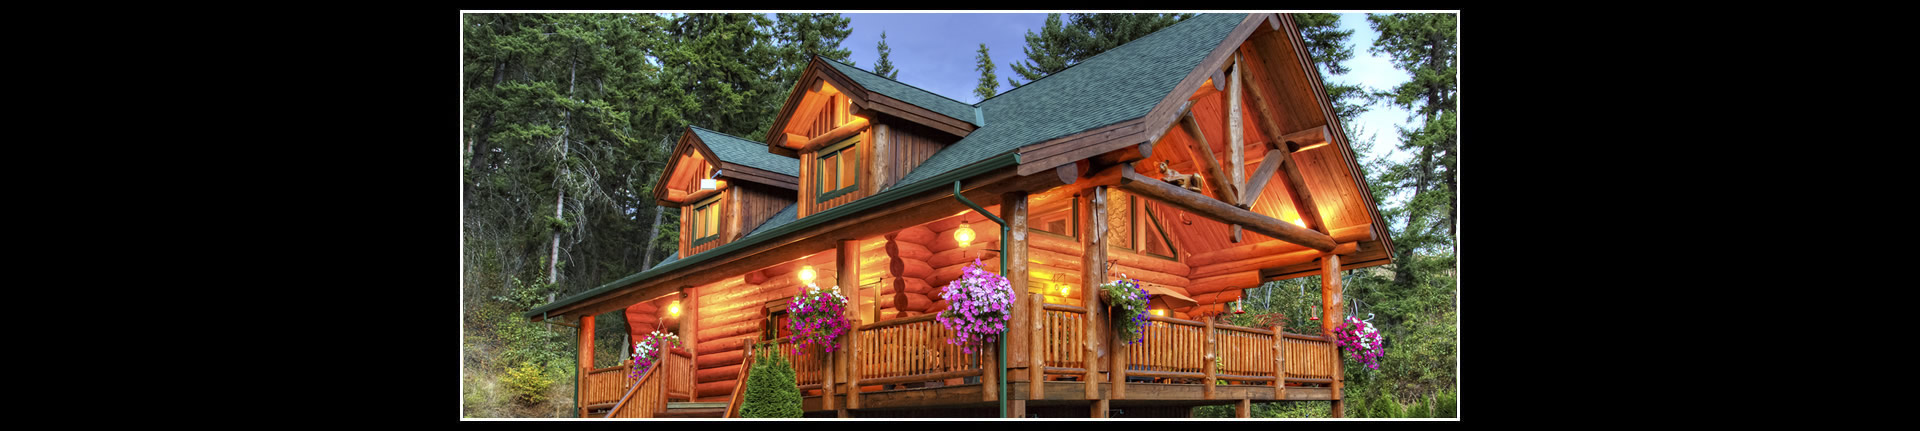 Slider_Image_log-cabin-1